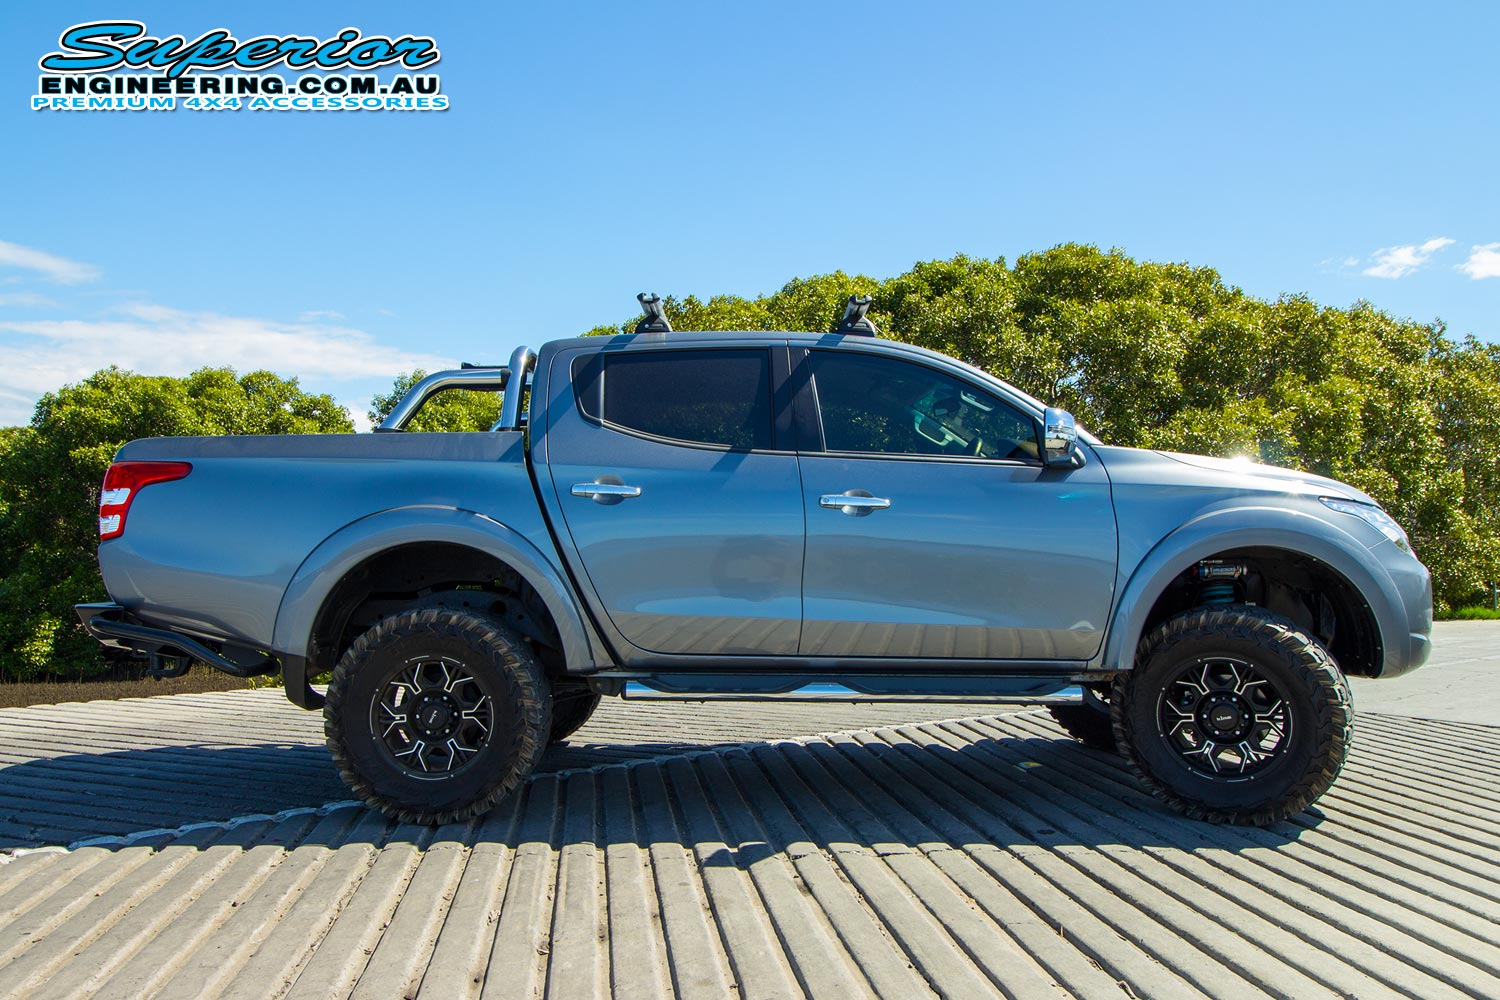 Right view of a MQ Mitsubishi Triton fitted with some Premium Superior Remote Reservoir Shocks and Struts at the Caboolture river boat ramp